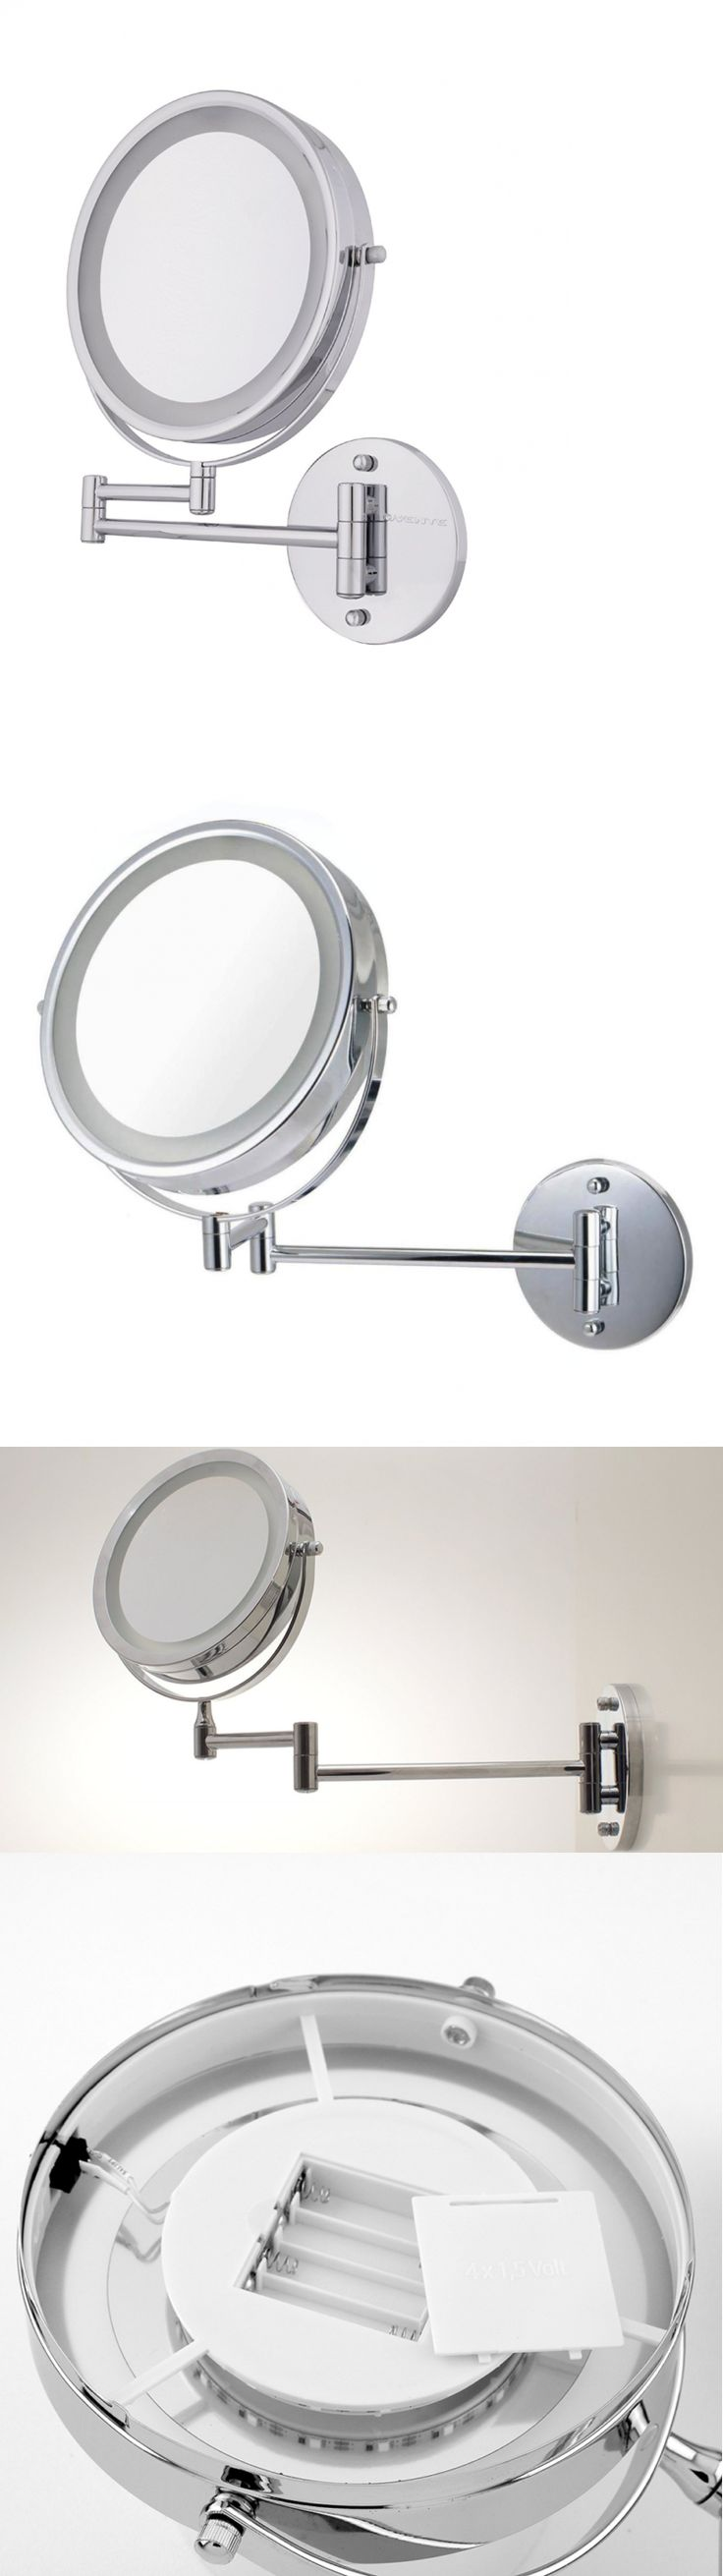 Top 6 bathroom mirrors ebay - Makeup Mirrors Ovente Battery Operated Led Lighted Wall Mount Vanity Makeup Mirror 1x 10x